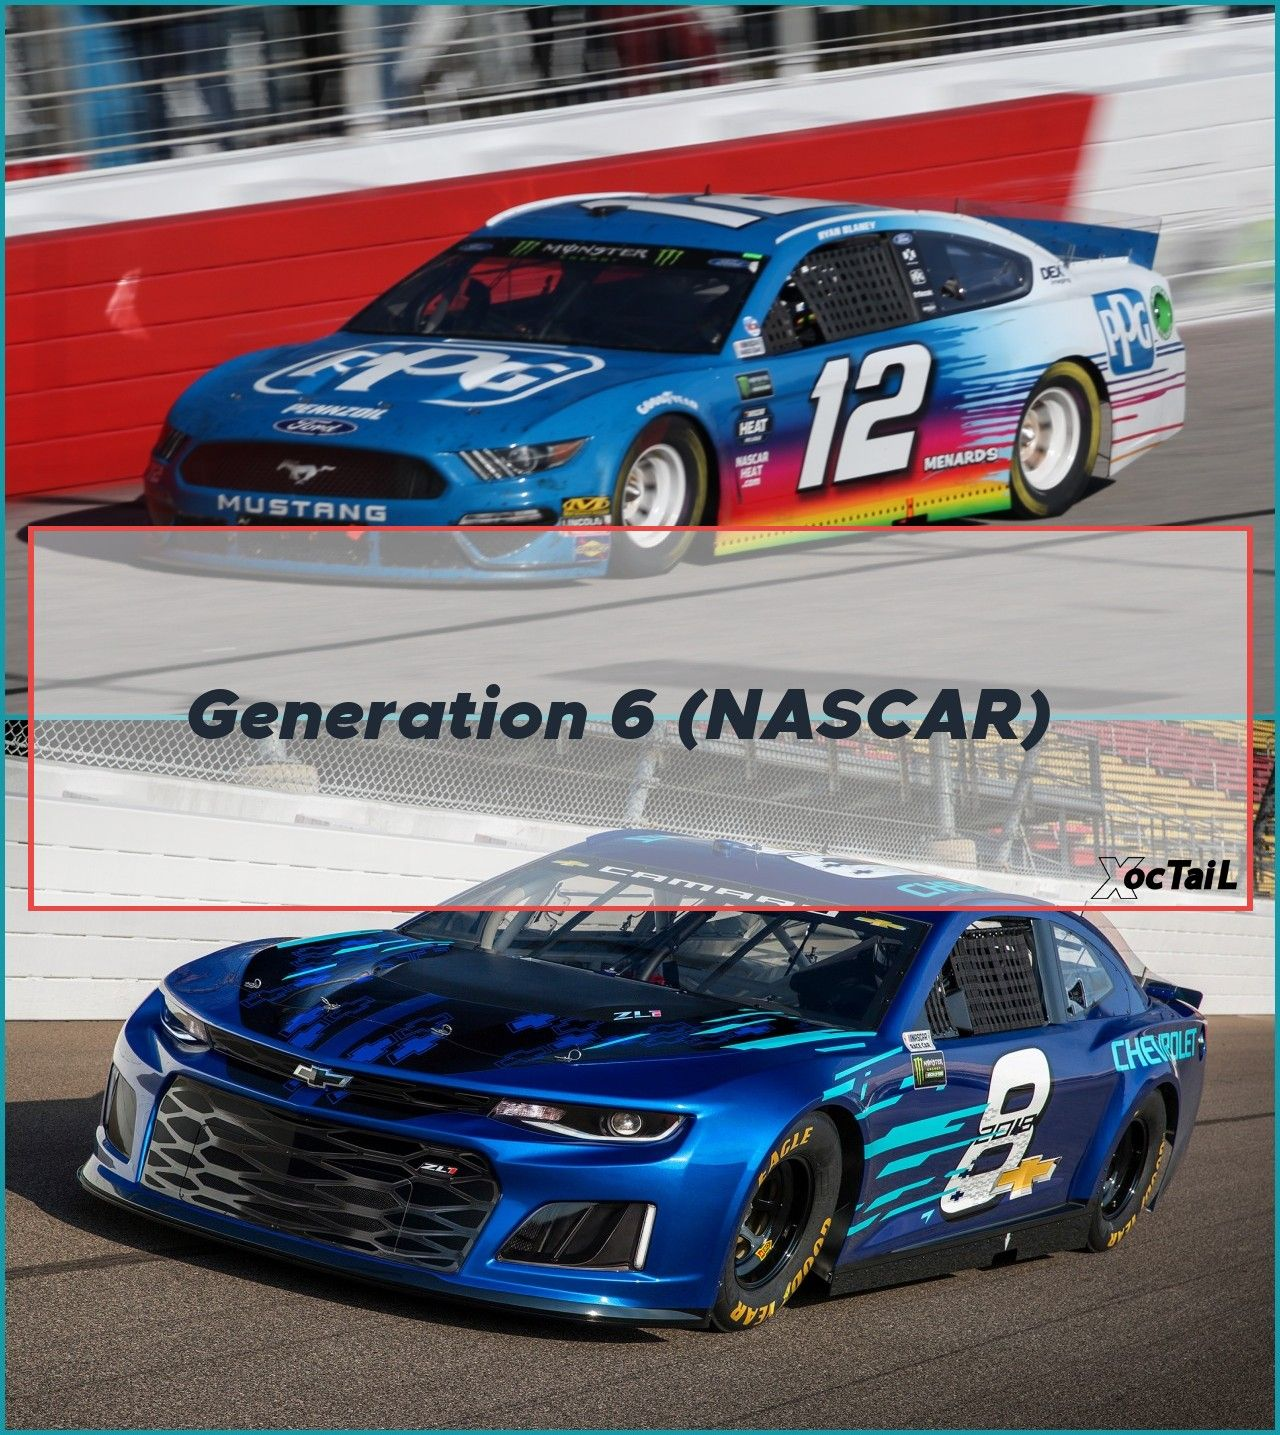 Generation 6 Nascar Nascar Camaro Zl1 Chevrolet Cup Series Race Background Wallpapers Iphone Definition Desktop Pixel Android Ws Arn Carpixel 2020